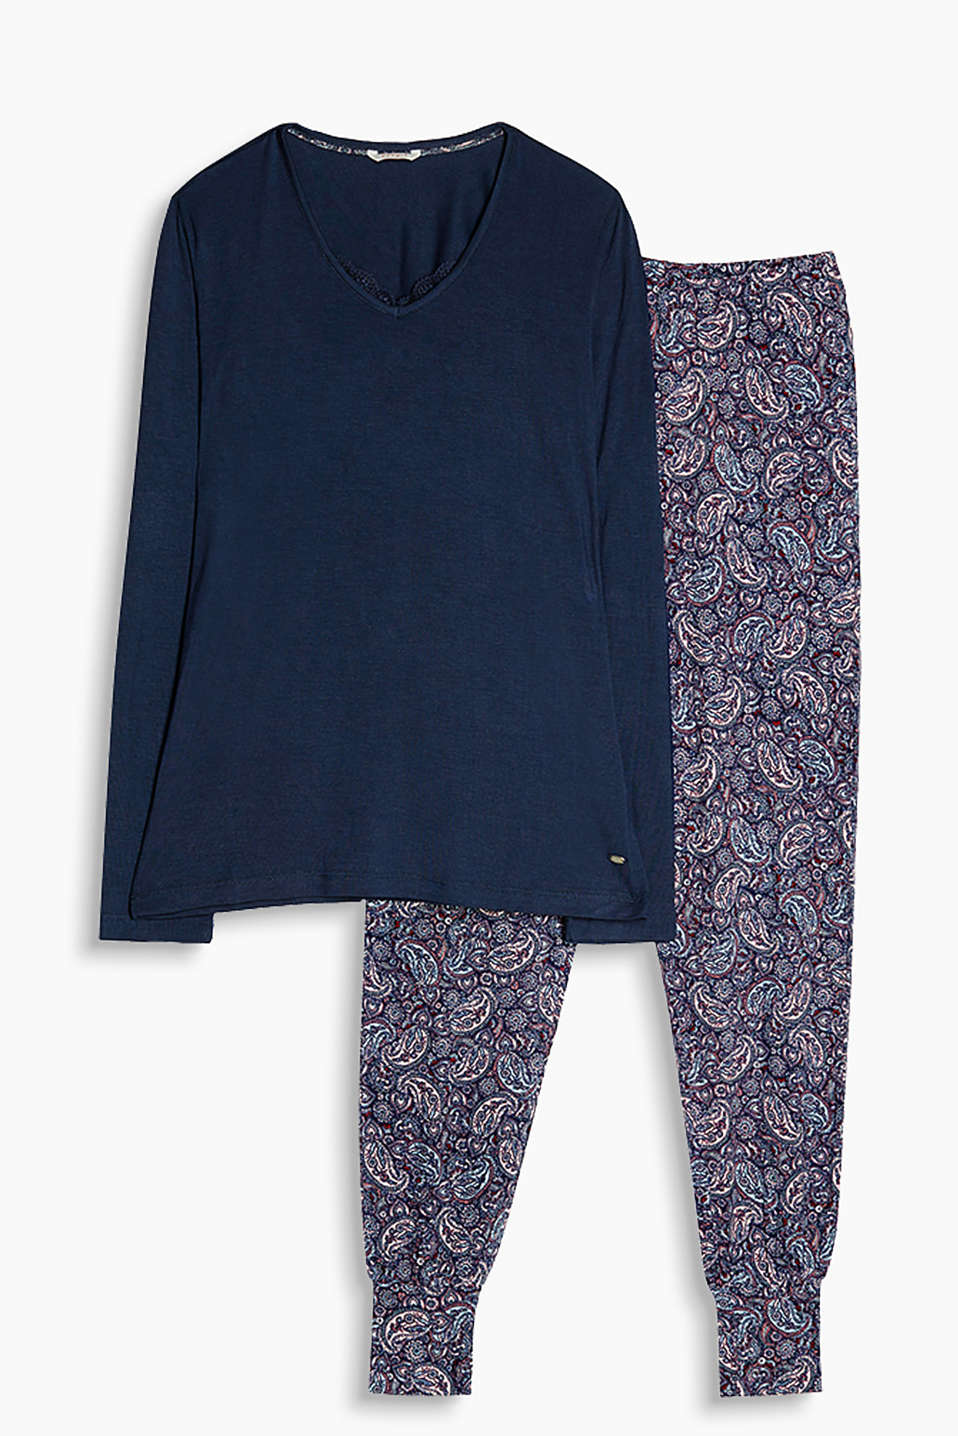 Floaty, stretch jersey pyjamas consisting of a plain, long sleeve top and tracksuit style bottoms with a paisley pattern